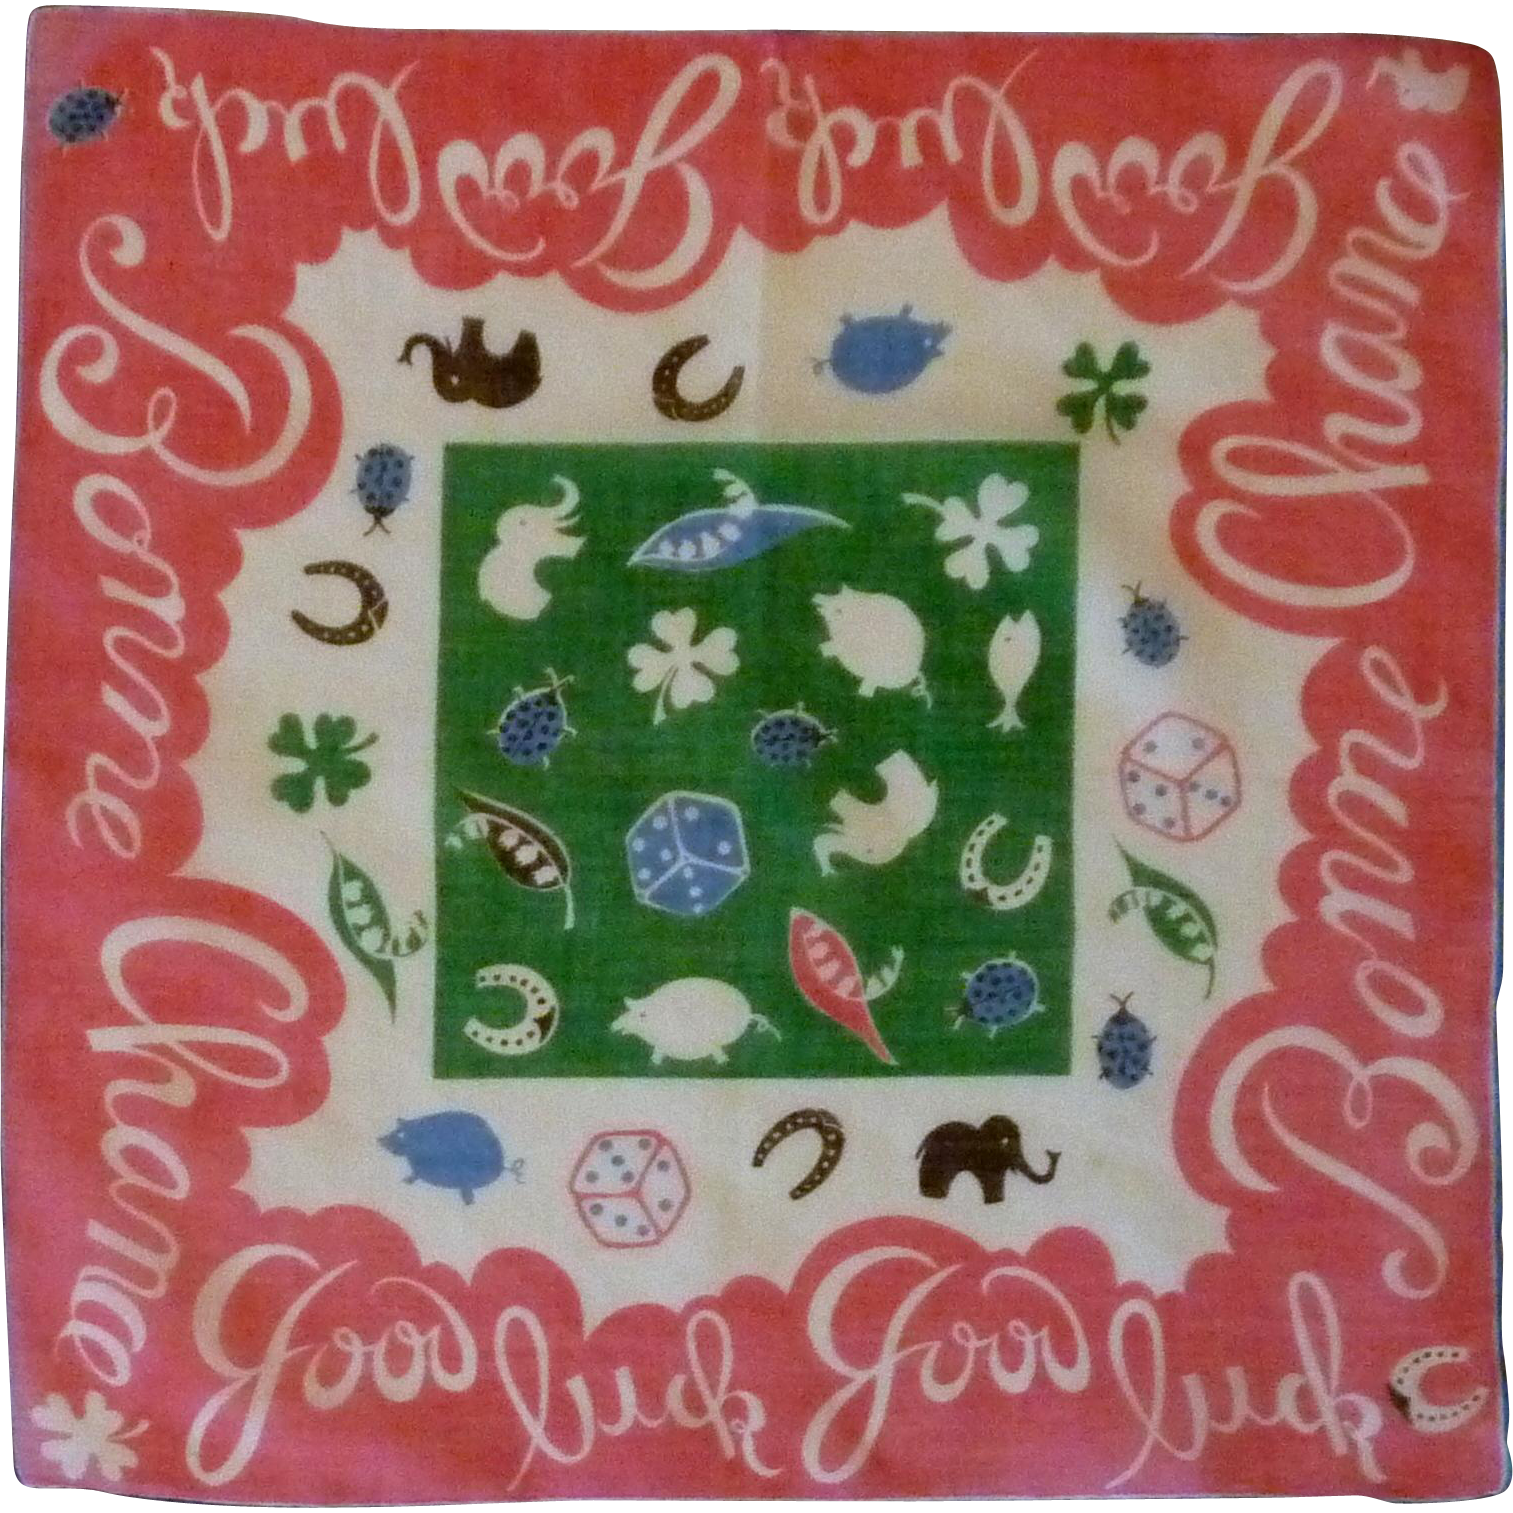 1950's Cotton Good Luck Handkerchief